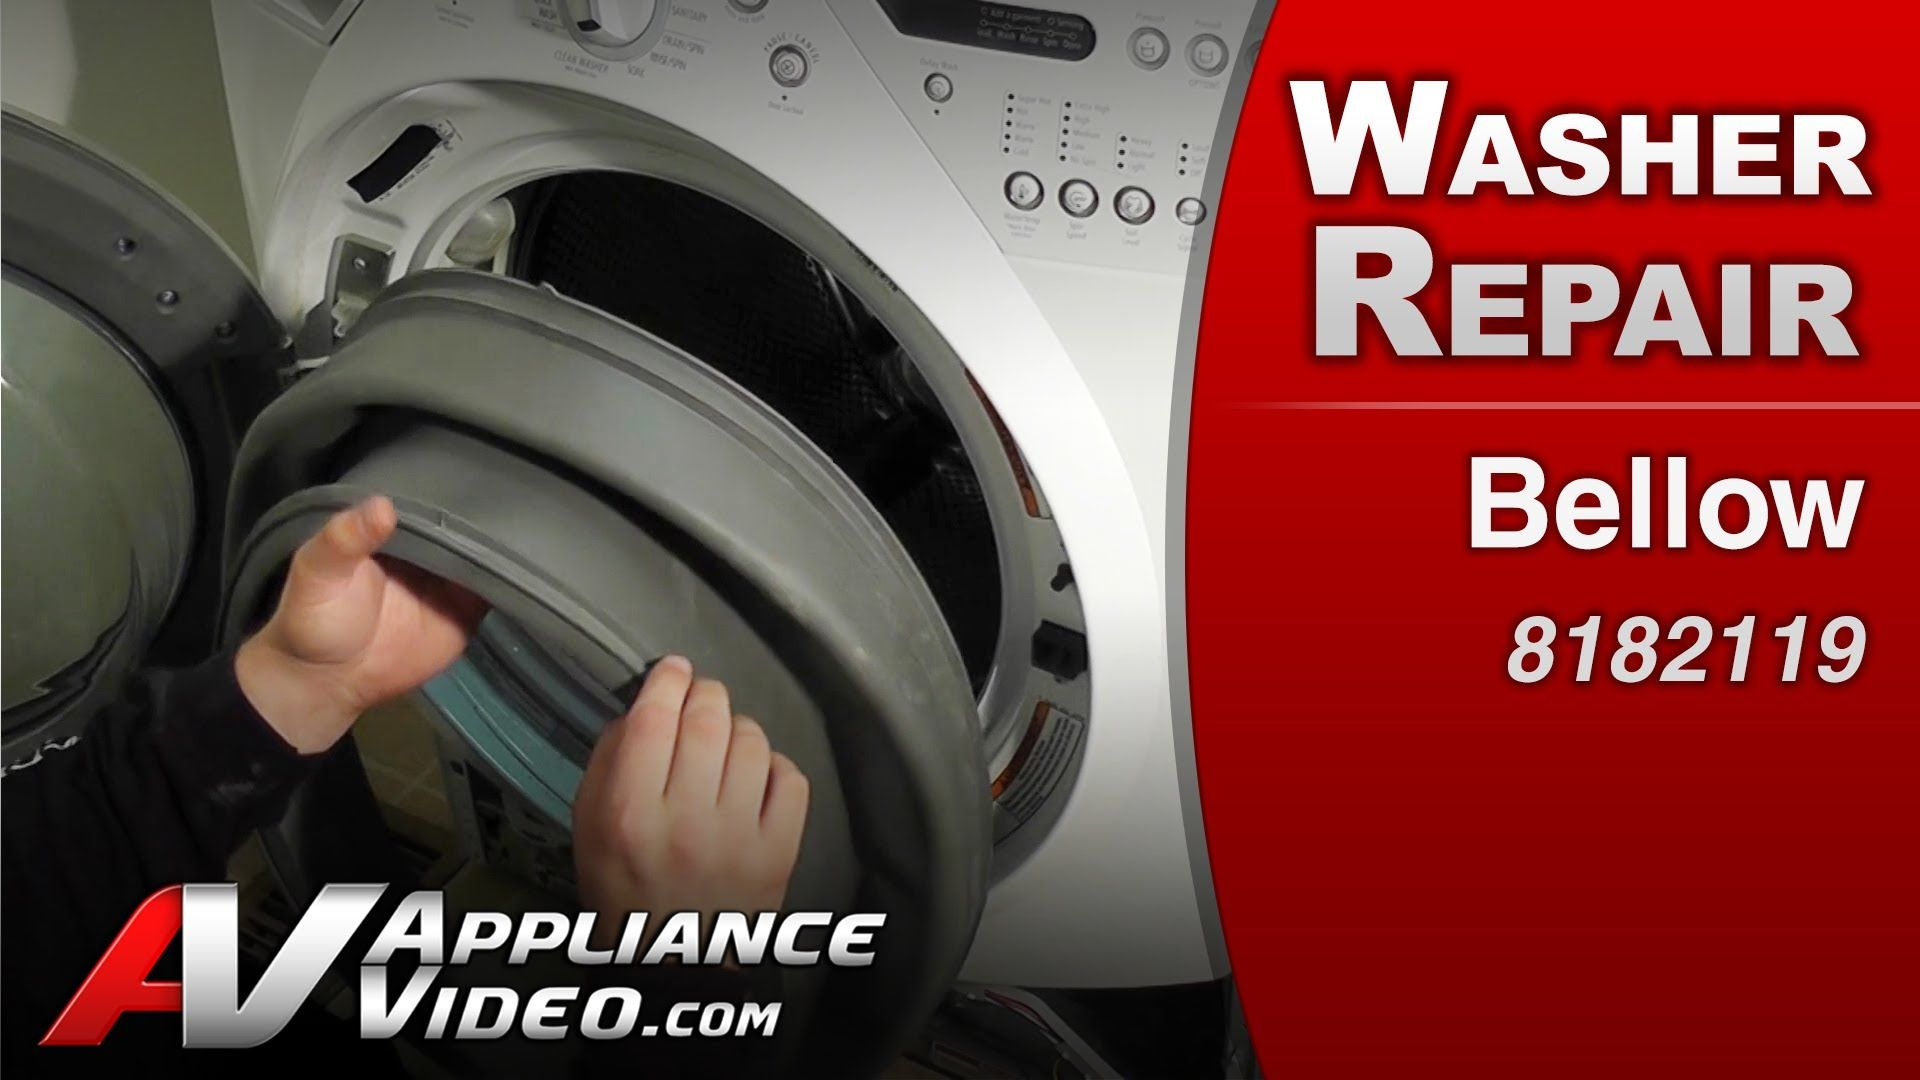 For more information visit us at: http://www.appliancevideo.com Learn How to Fix and Troubleshoot a broken Whirlpool, Maytag, KitchenAid, Jenn-Air, Amana, Ma...